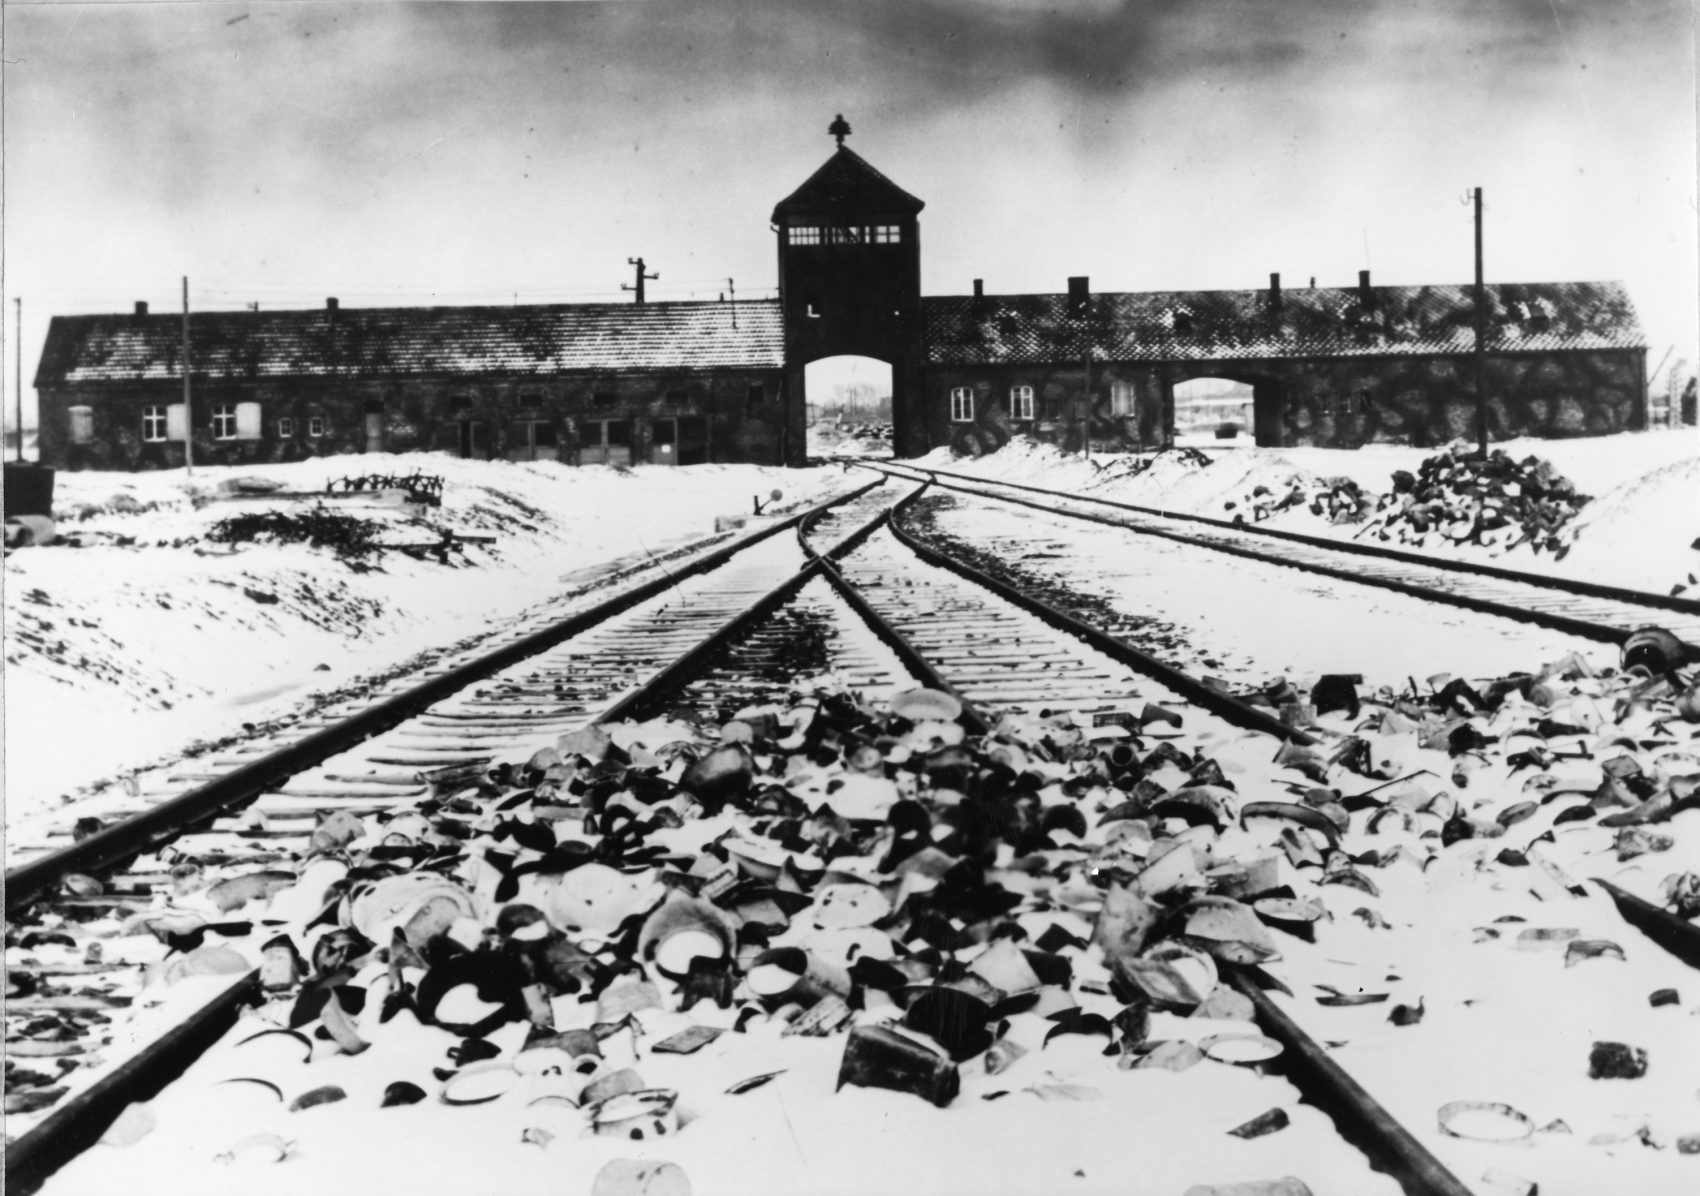 Entry to the concentration camp Auschwitz-Birkenau, Poland, with snow covered railtracks leading to the camp in February/March 1945. (Stanislaw Mucha/AP)